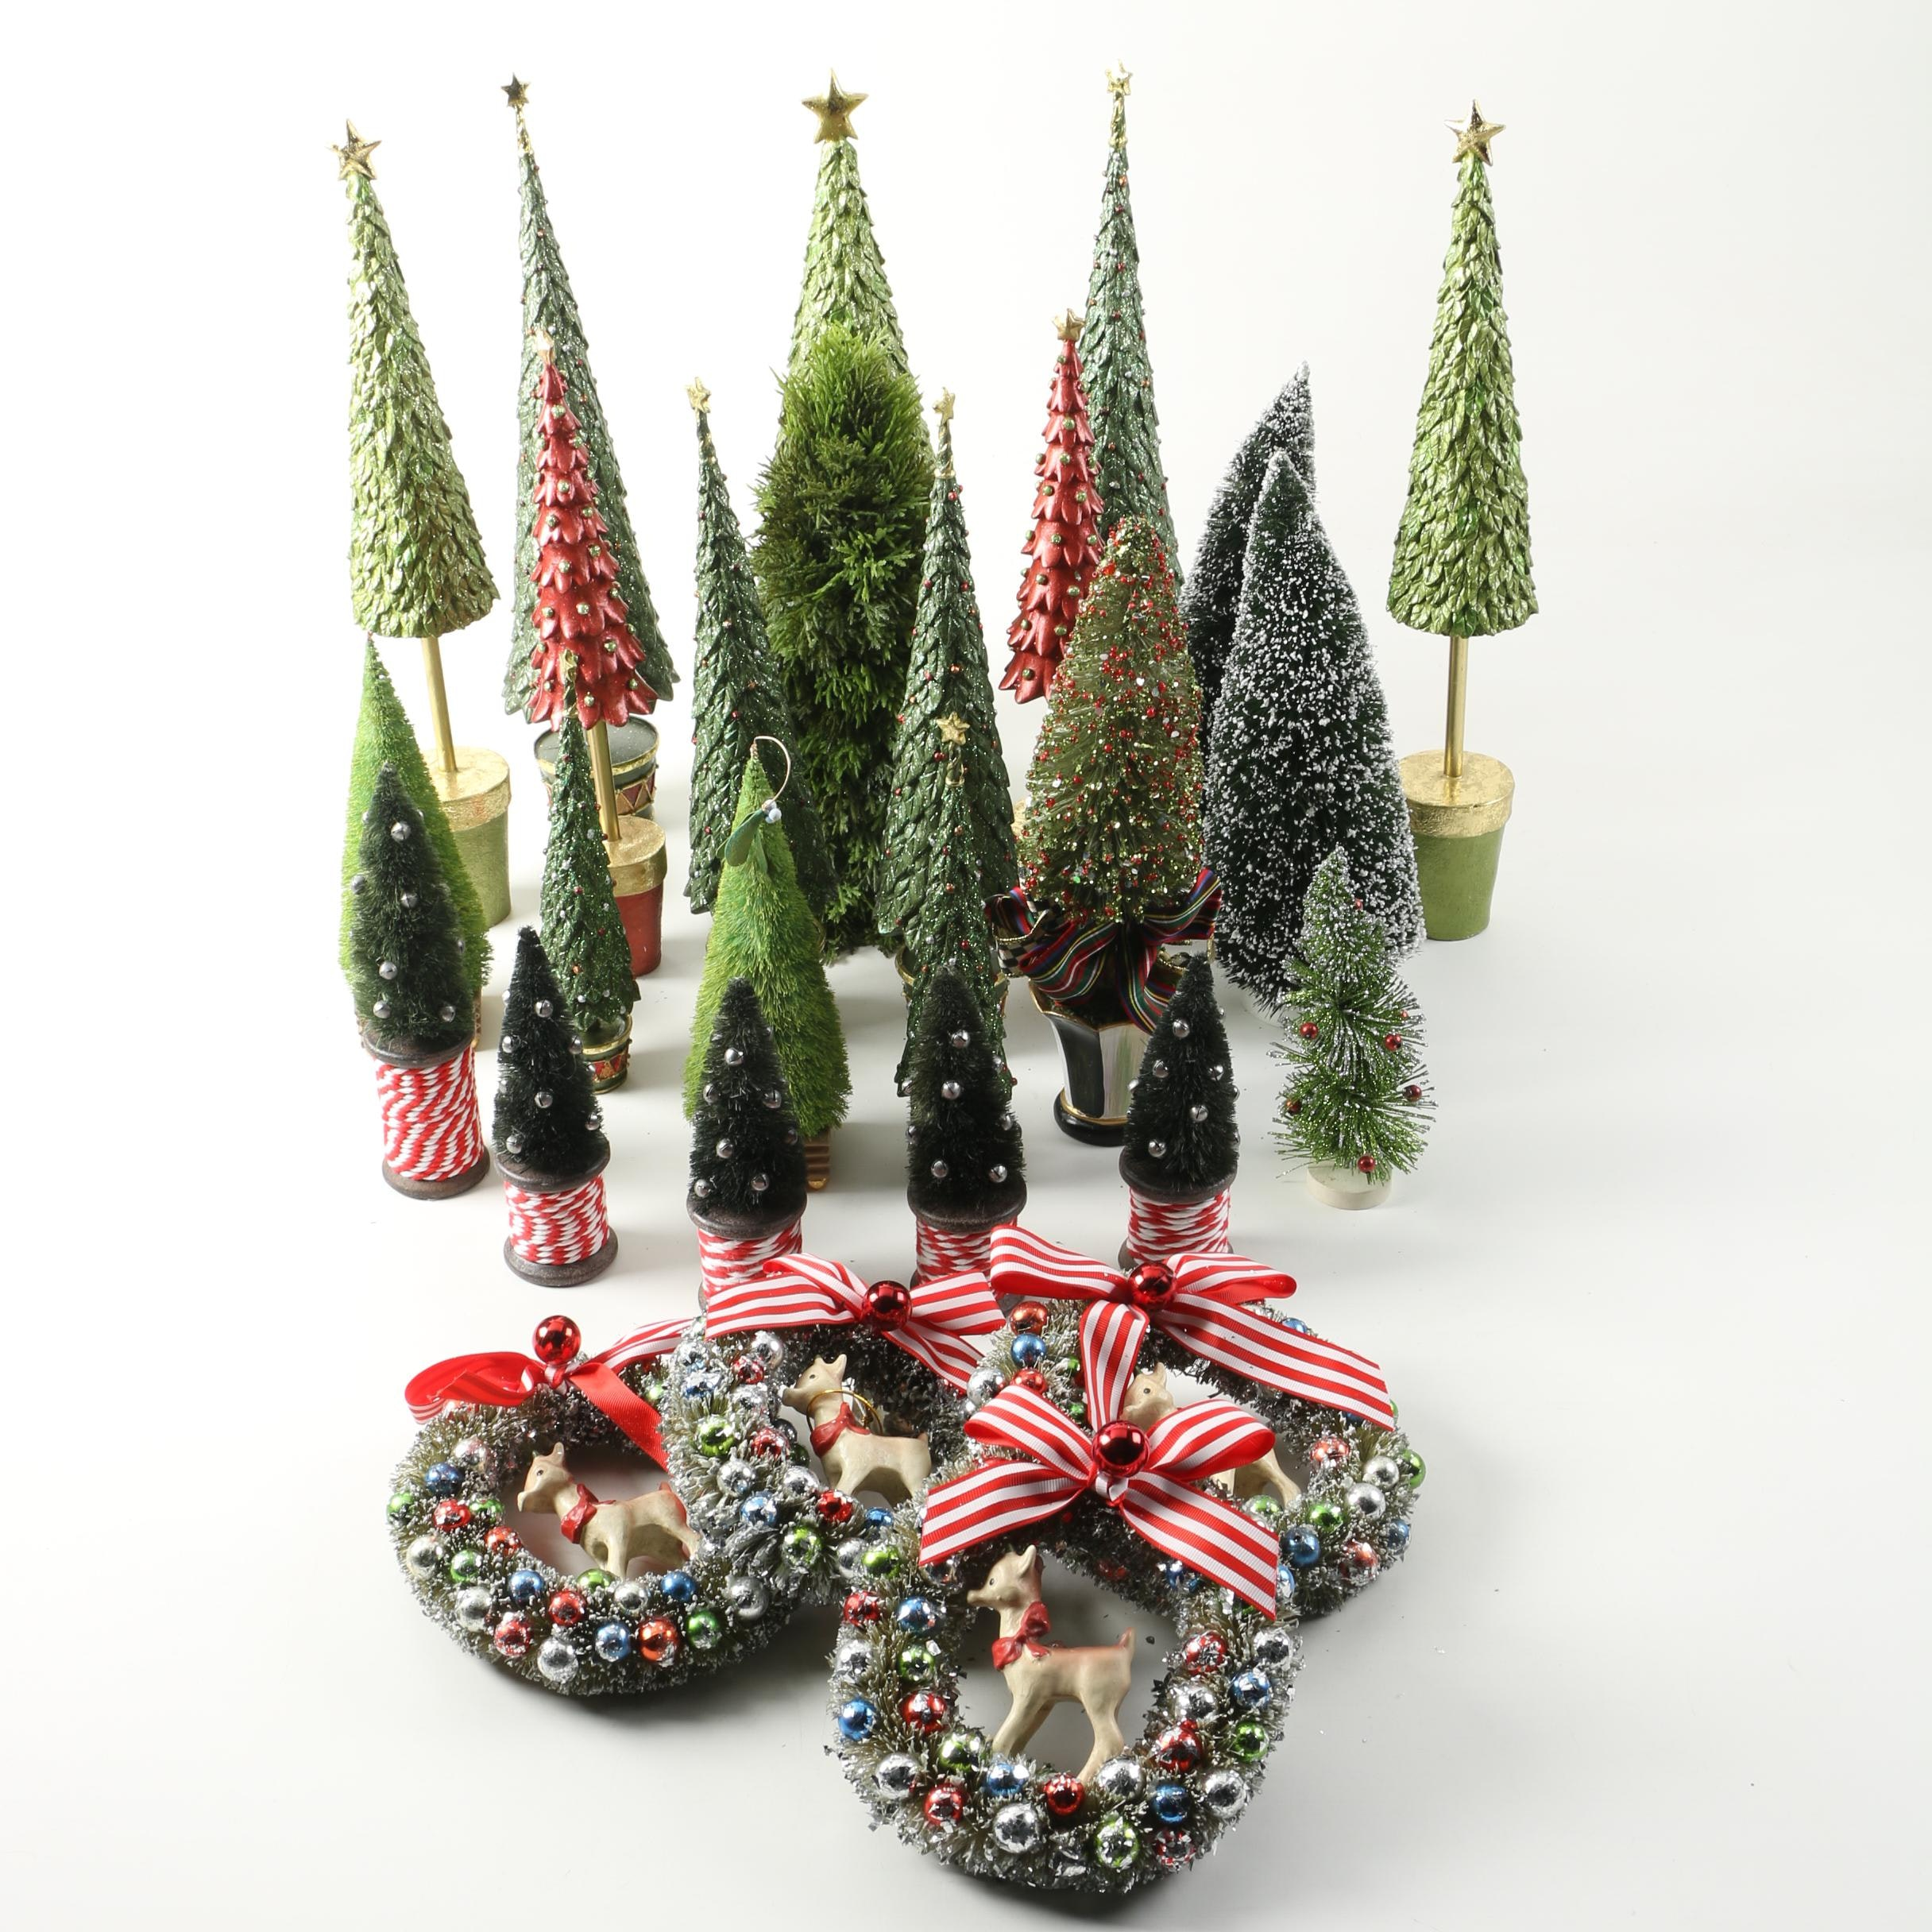 Holiday Themed Decorative Artificial Trees and Wreaths